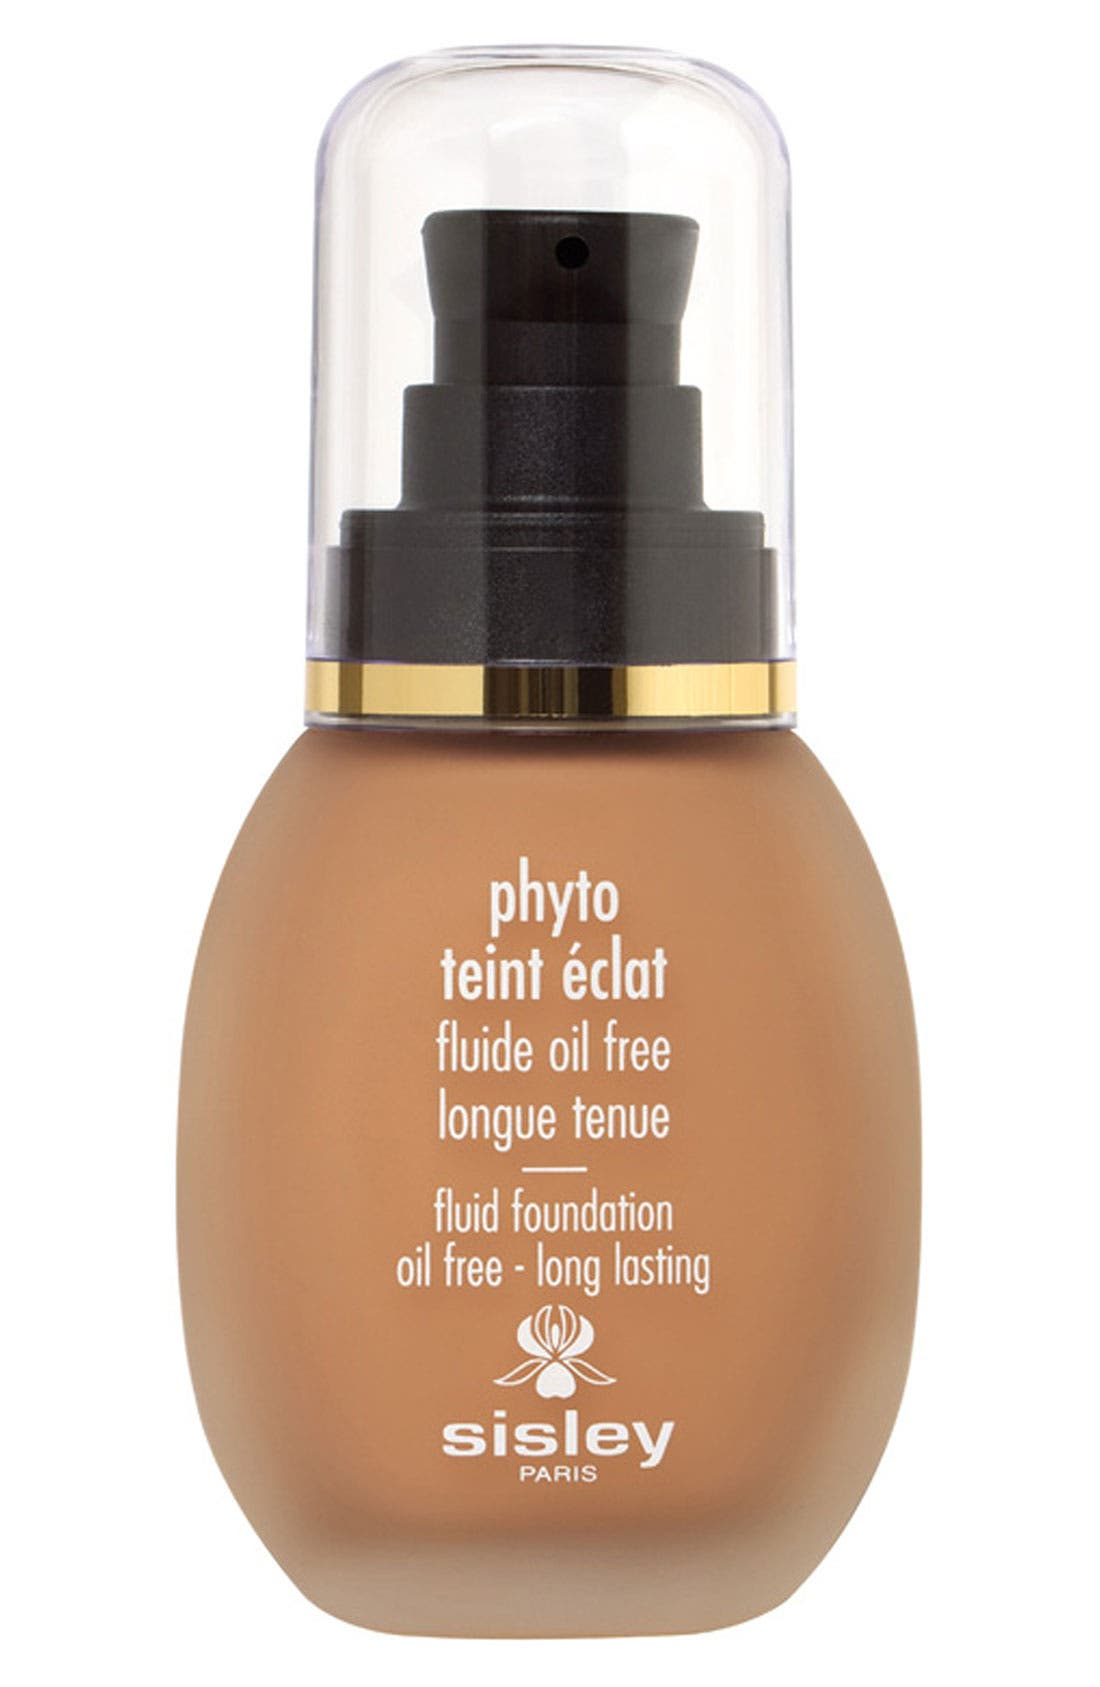 Sisley Paris 'Phyto-Teint Éclat' Fluid Foundation